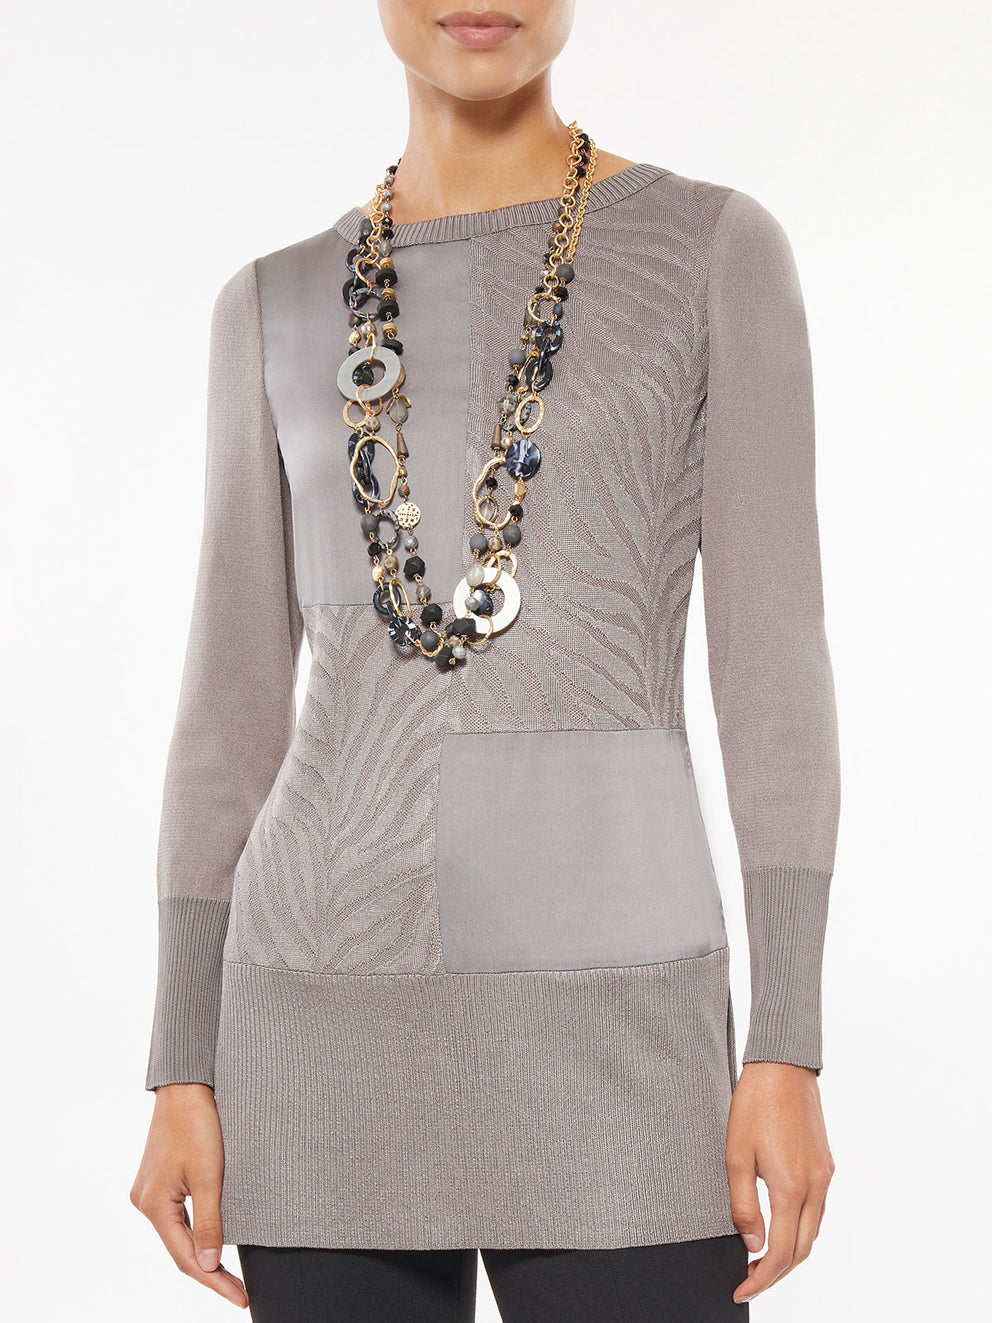 Misook Charmeuse and Knit Tunic in Mink Gray